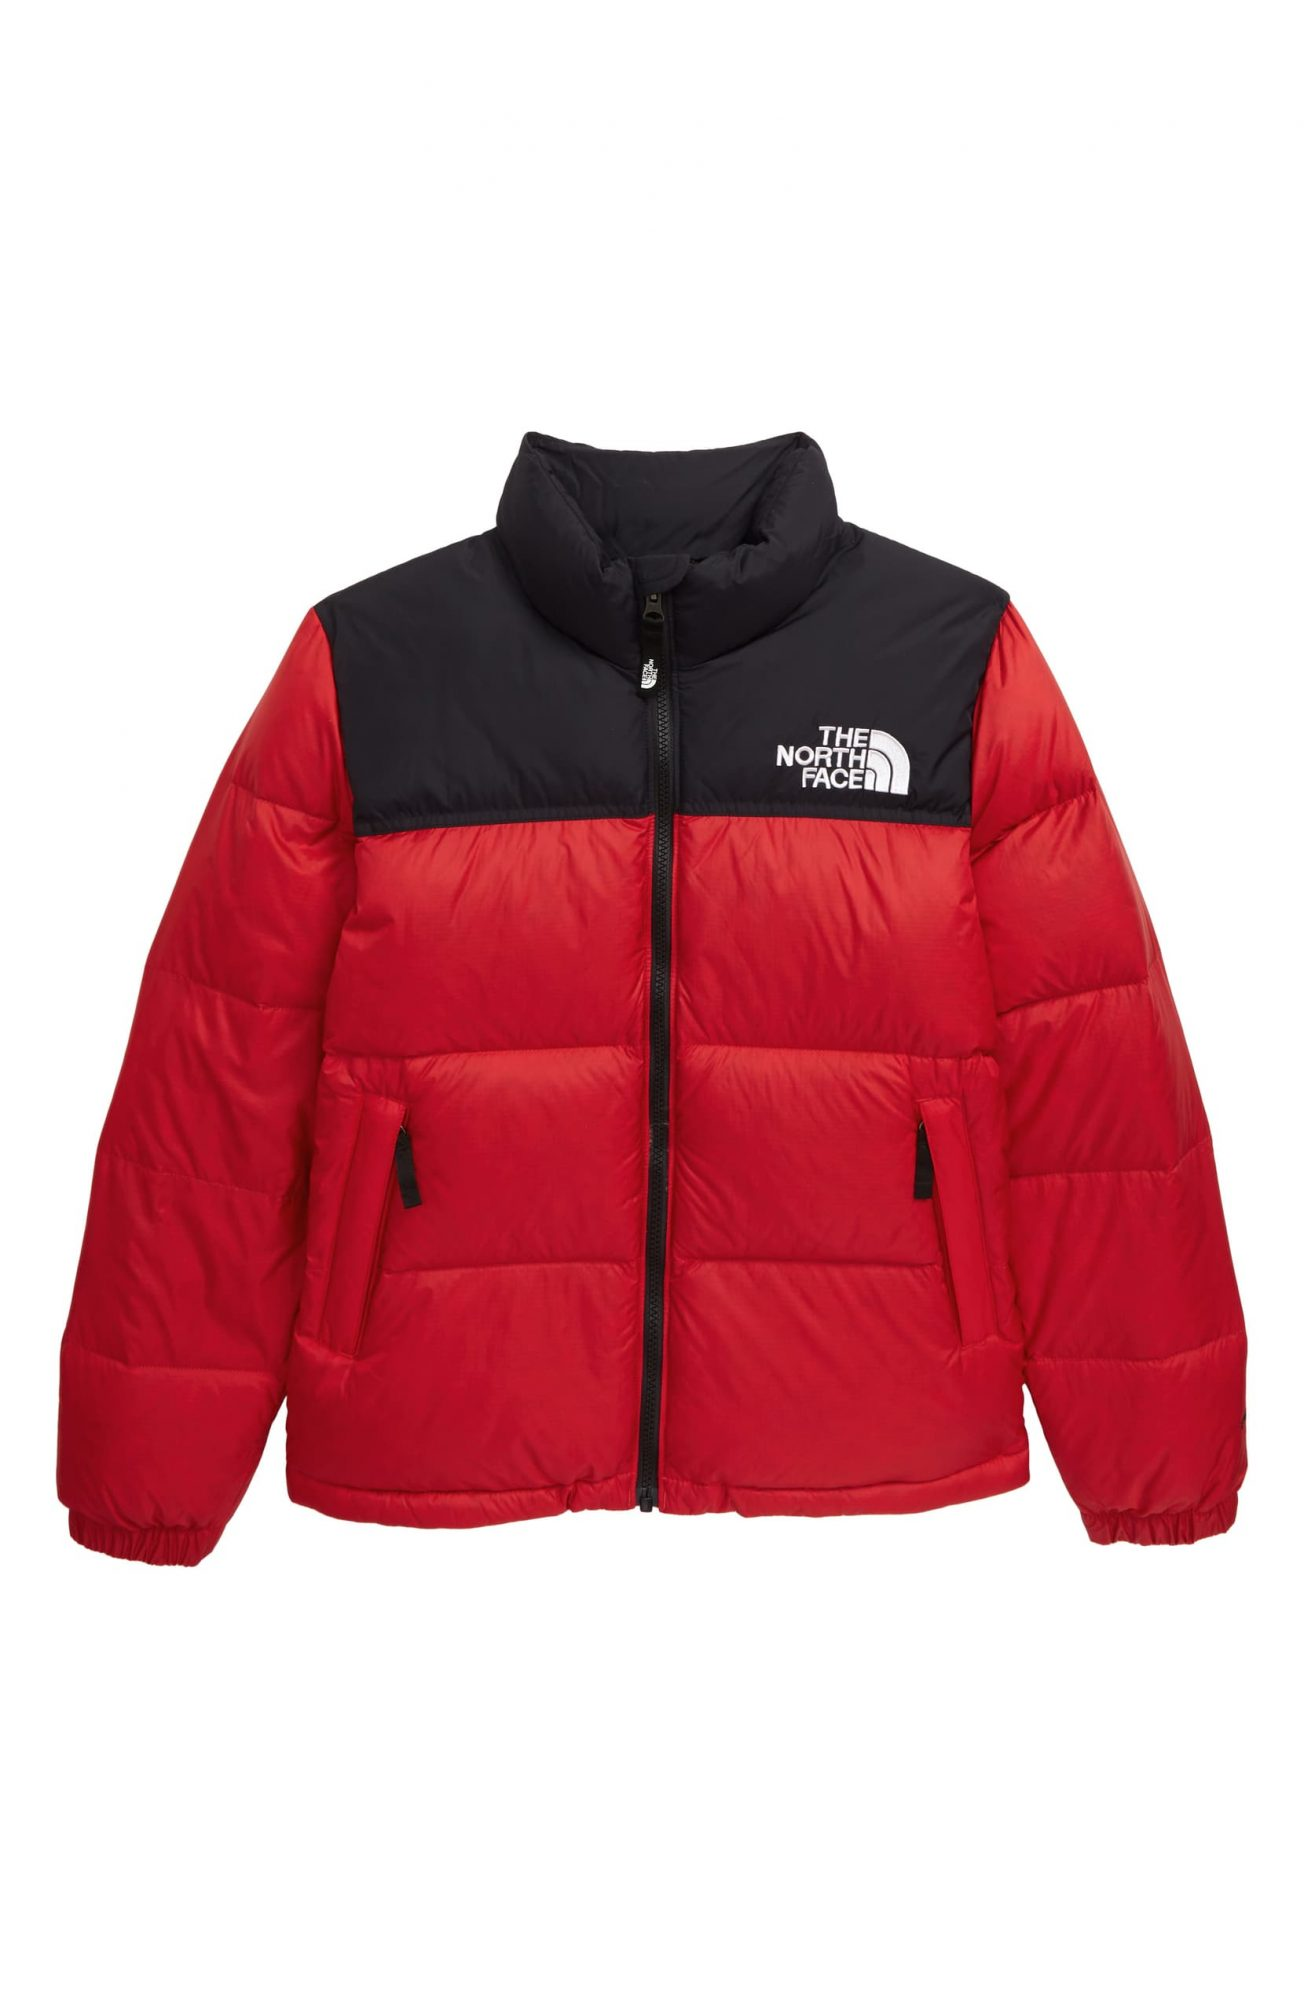 The North Face Red Puffer Jacket